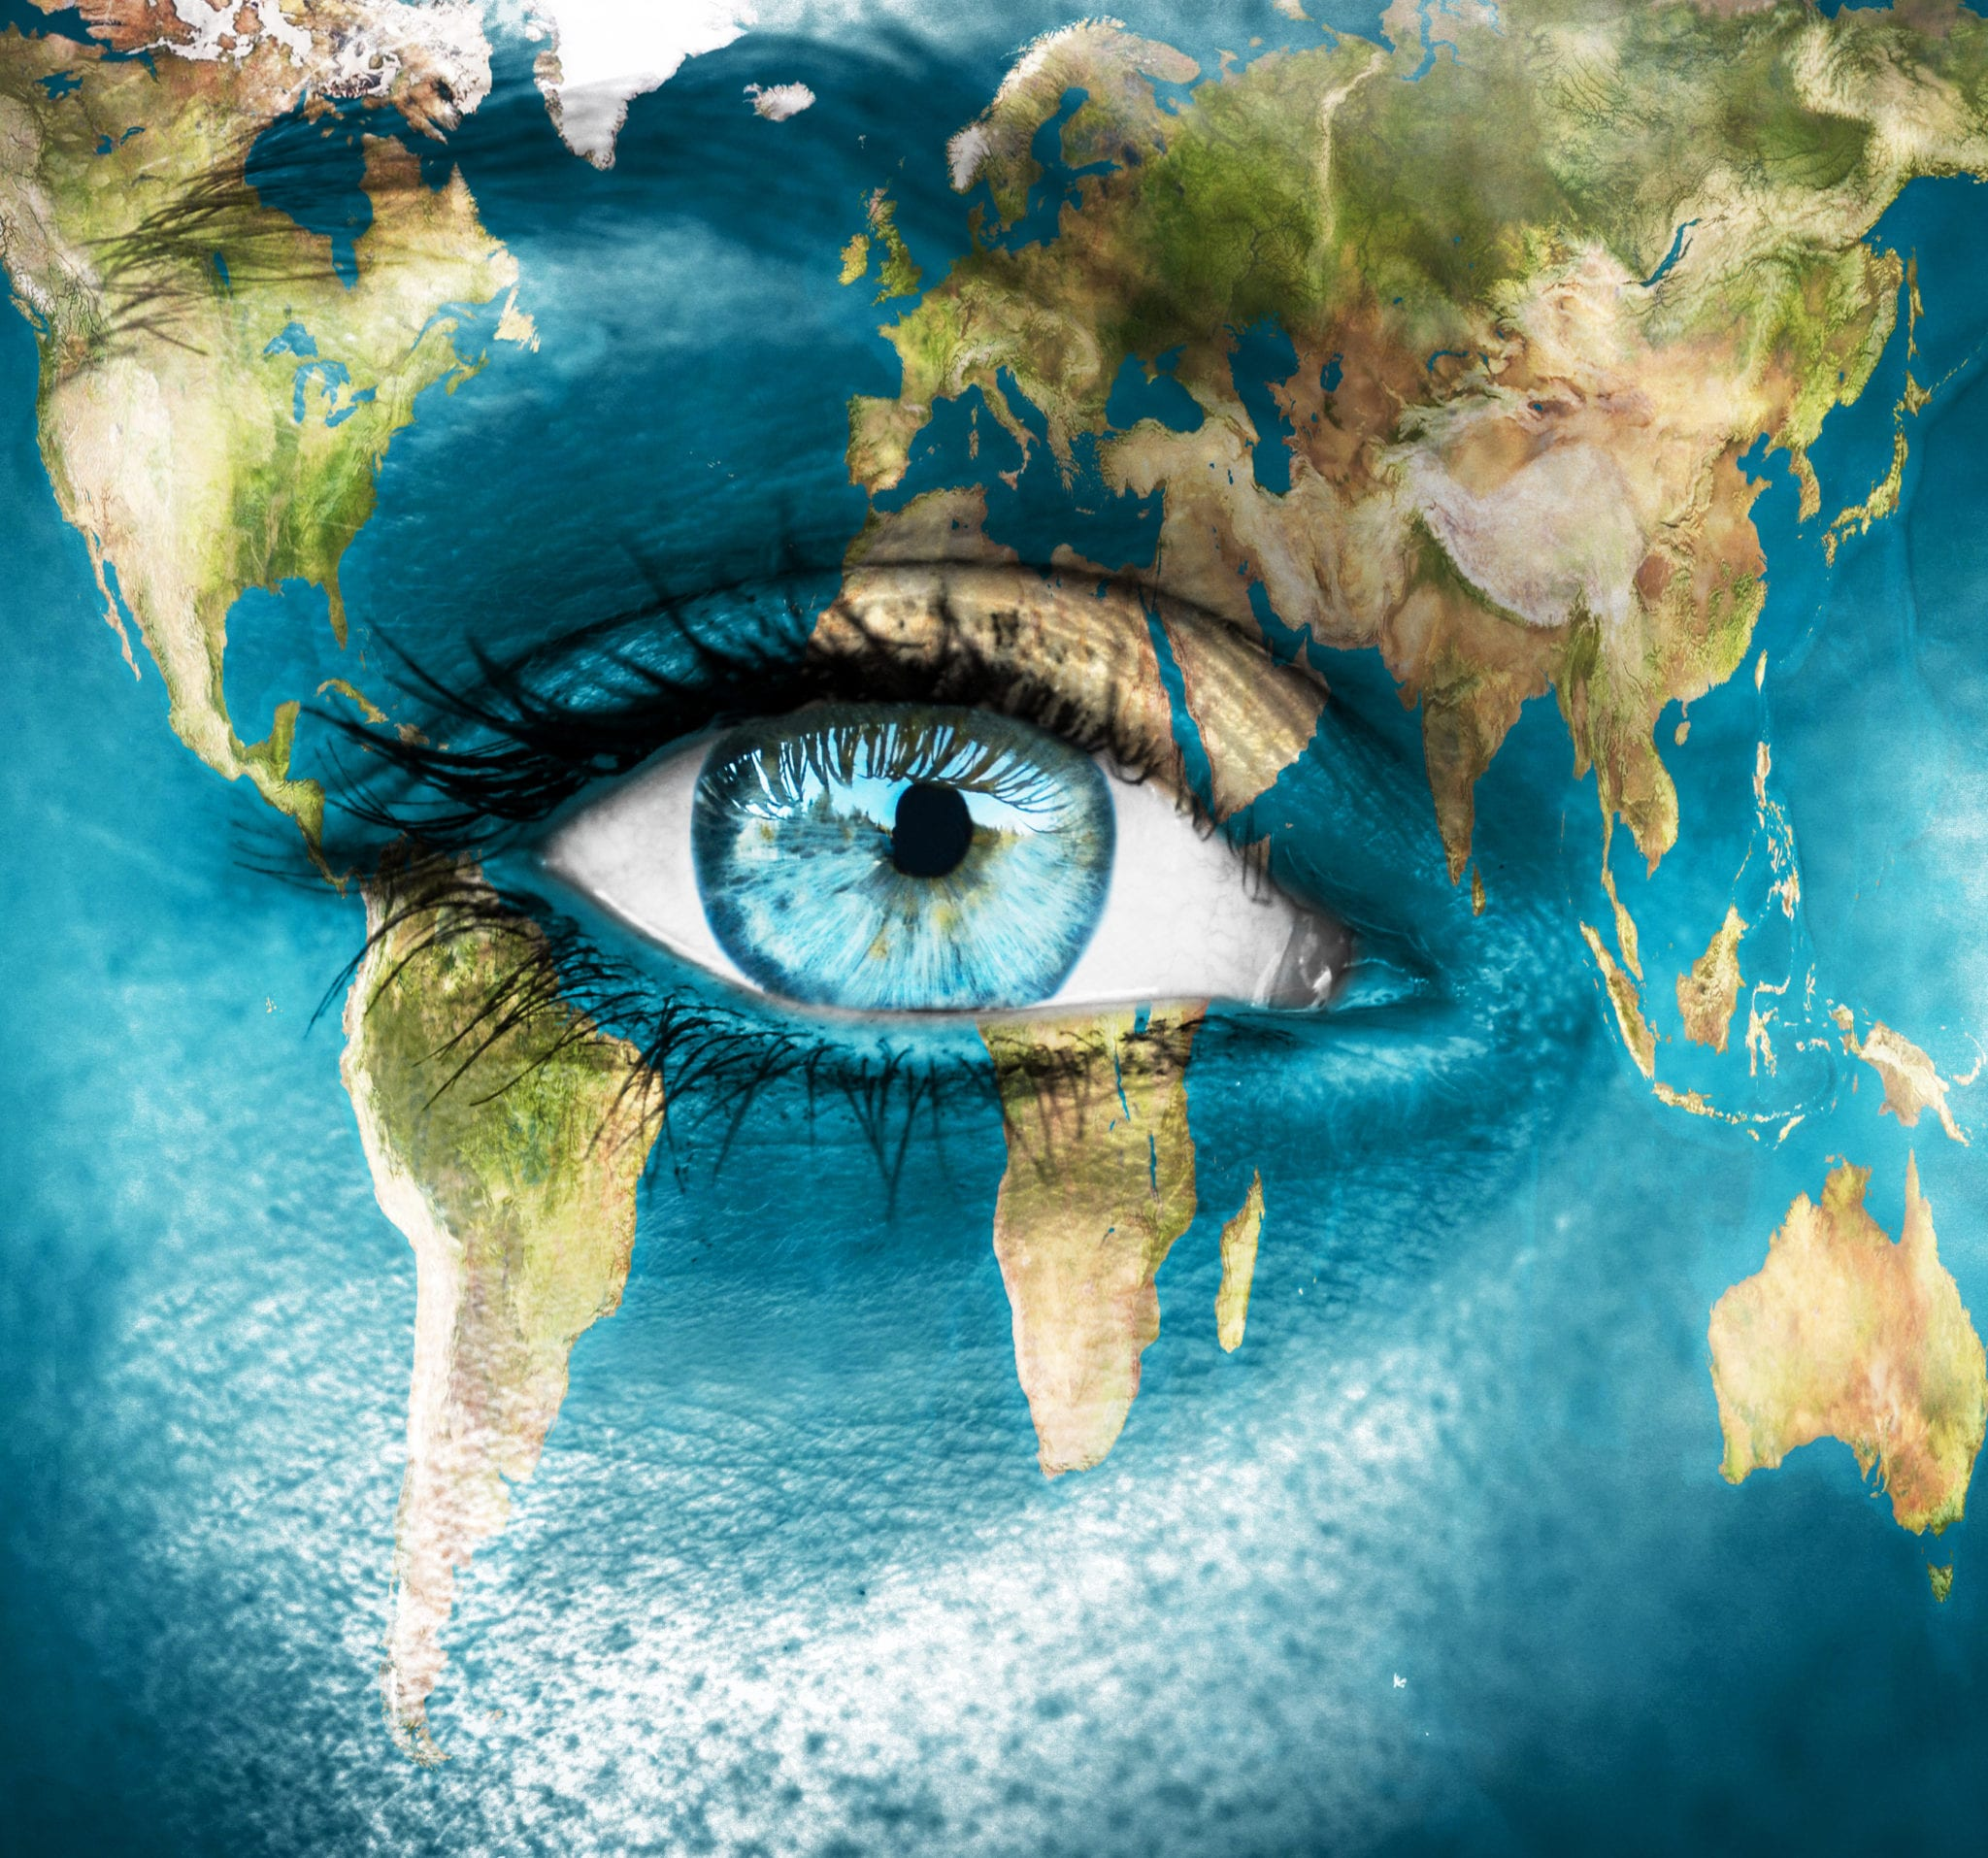 Having energetic mastery with world affairs